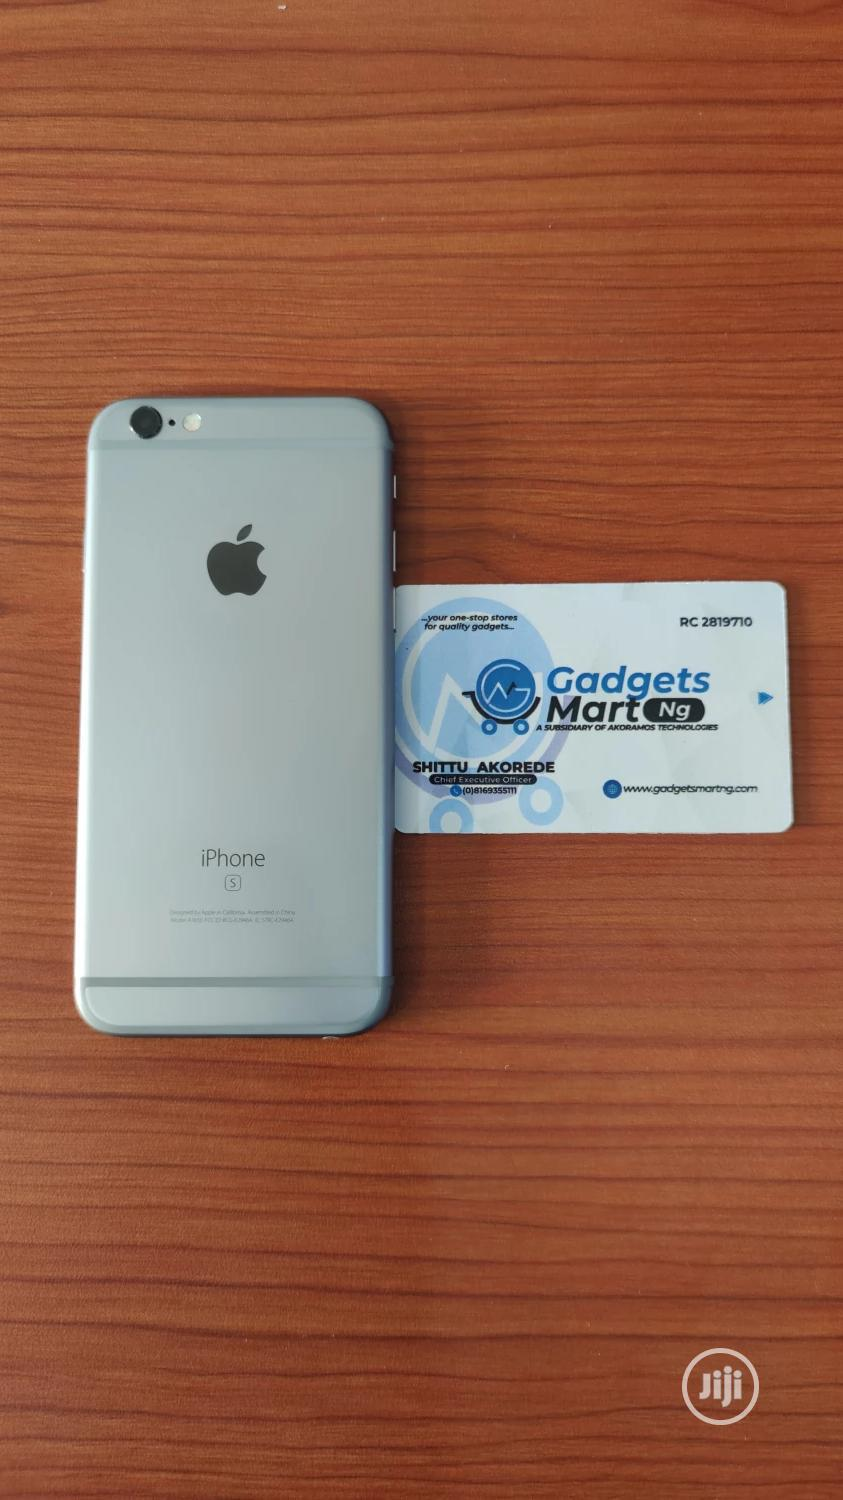 Apple iPhone 6s 16 GB Silver   Mobile Phones for sale in Ibadan, Oyo State, Nigeria